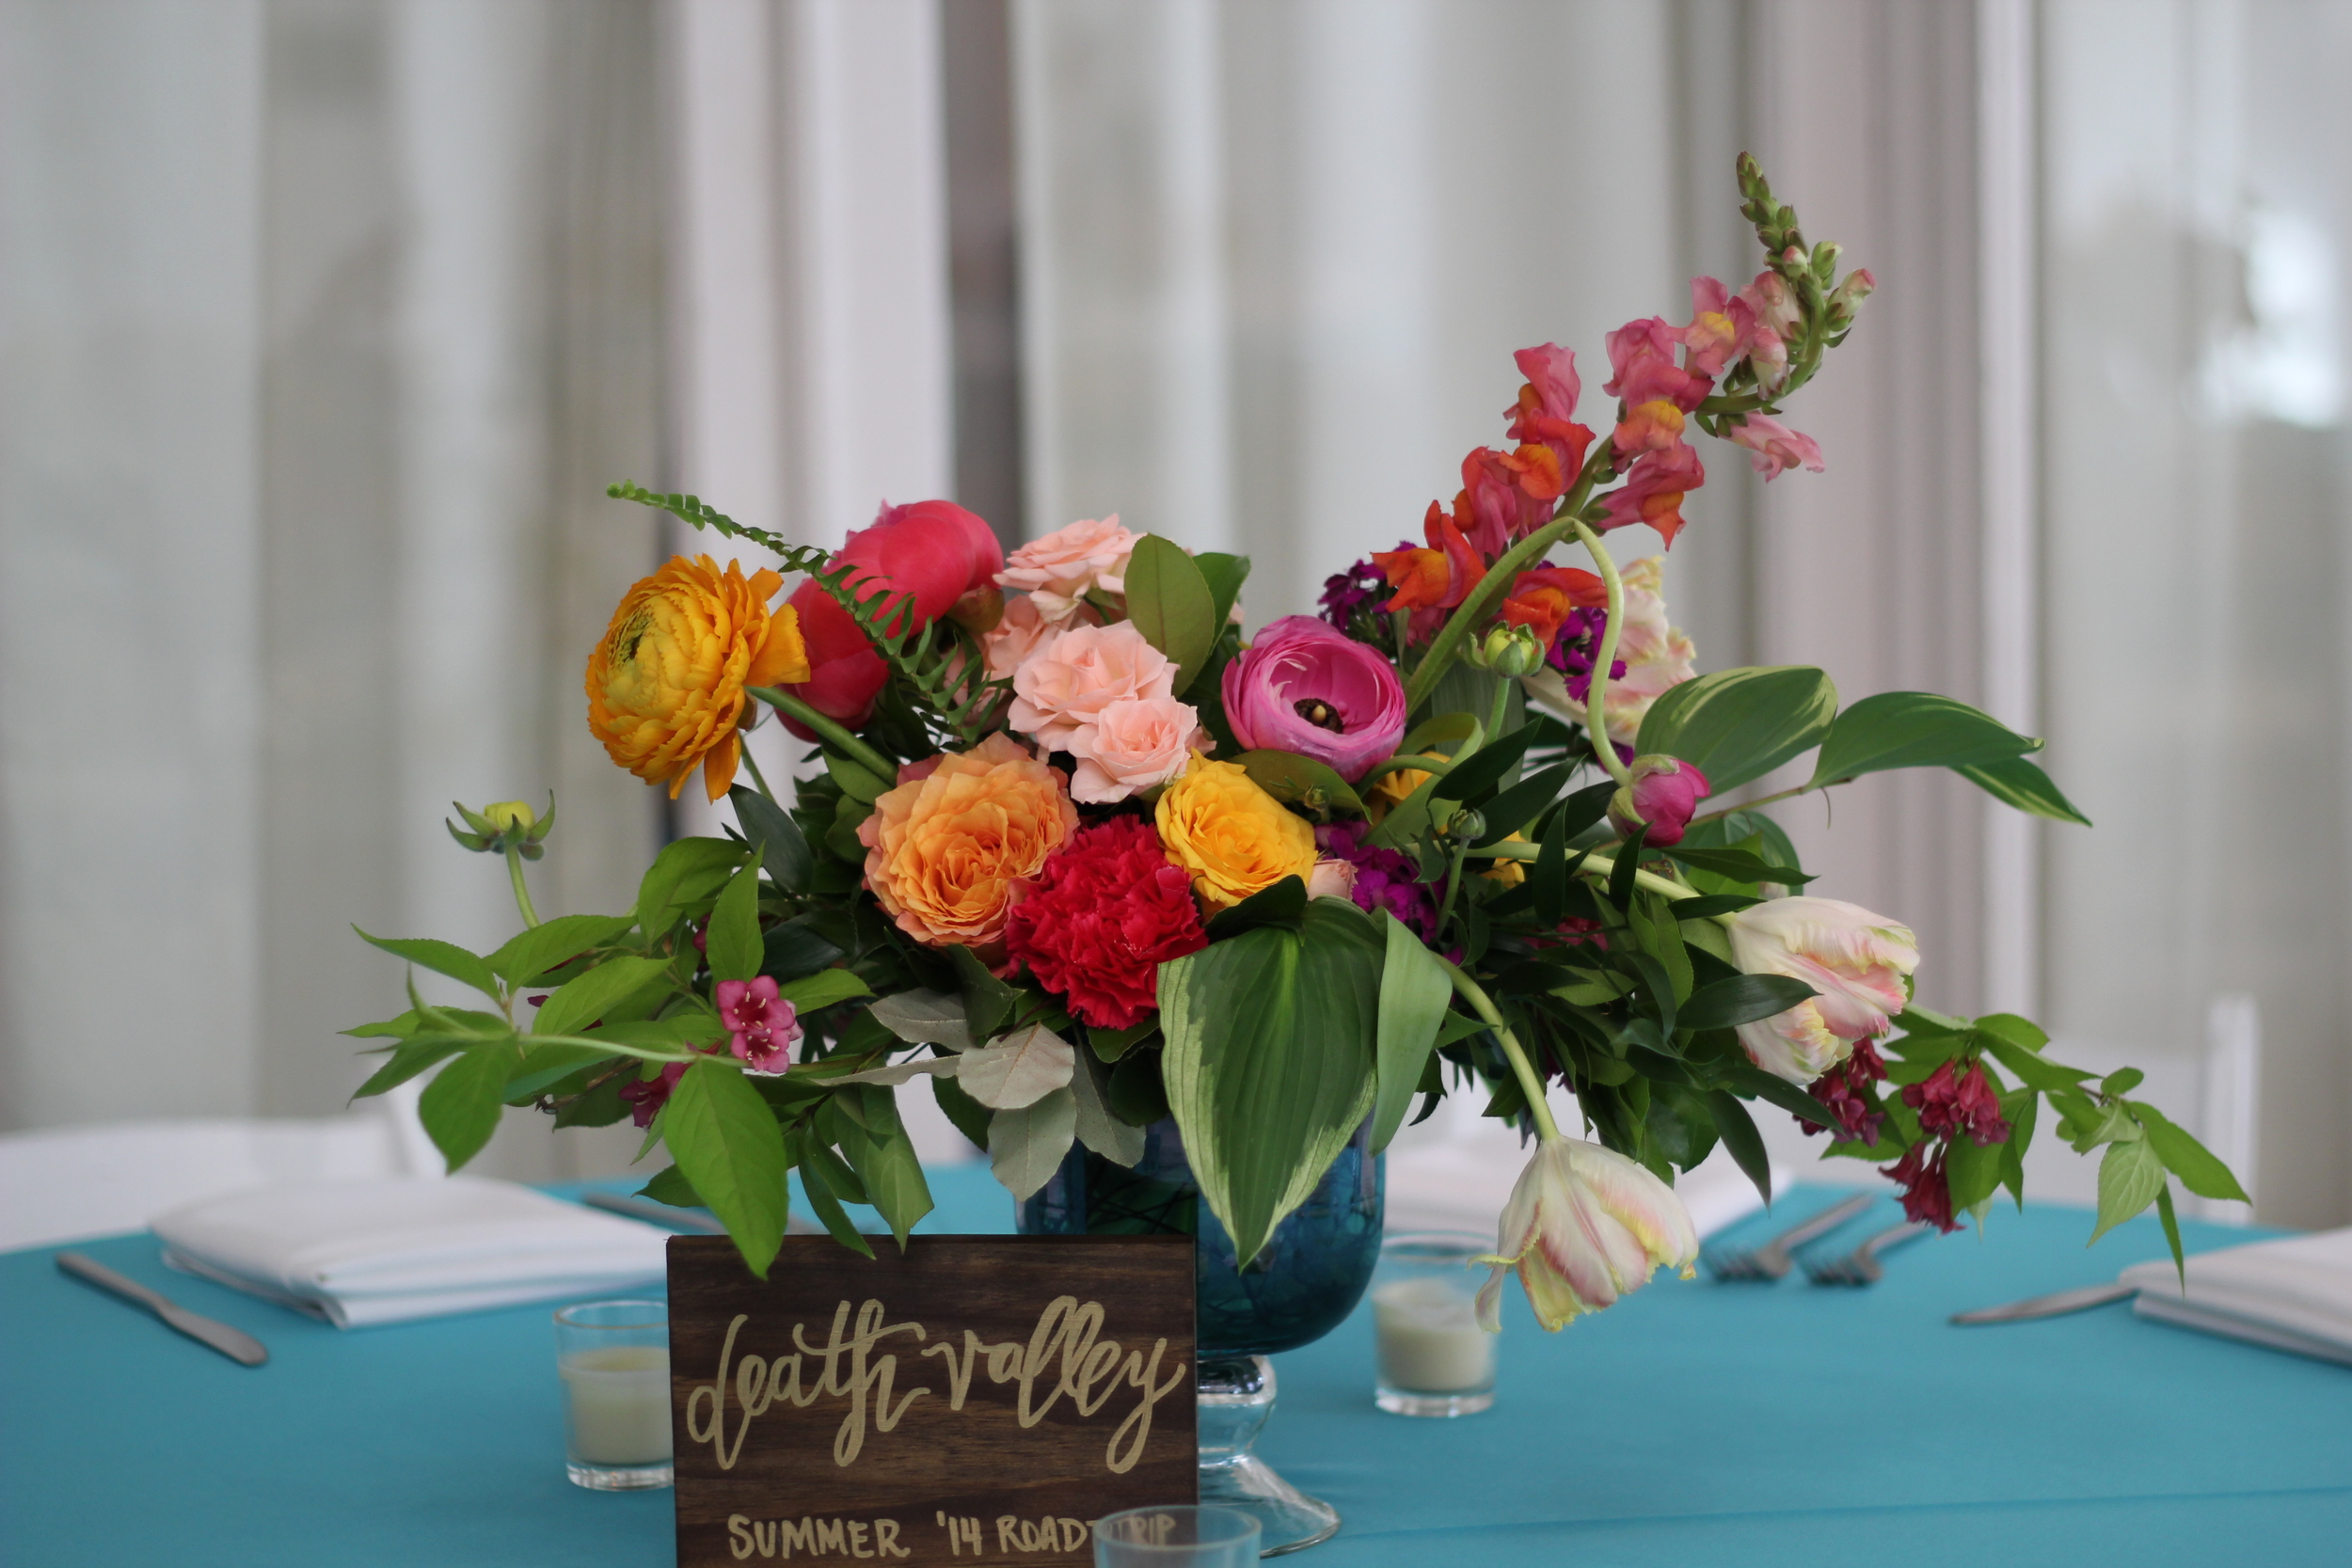 handley breaux designs | antiques at the gardens | floral tastemaker | holly bryan